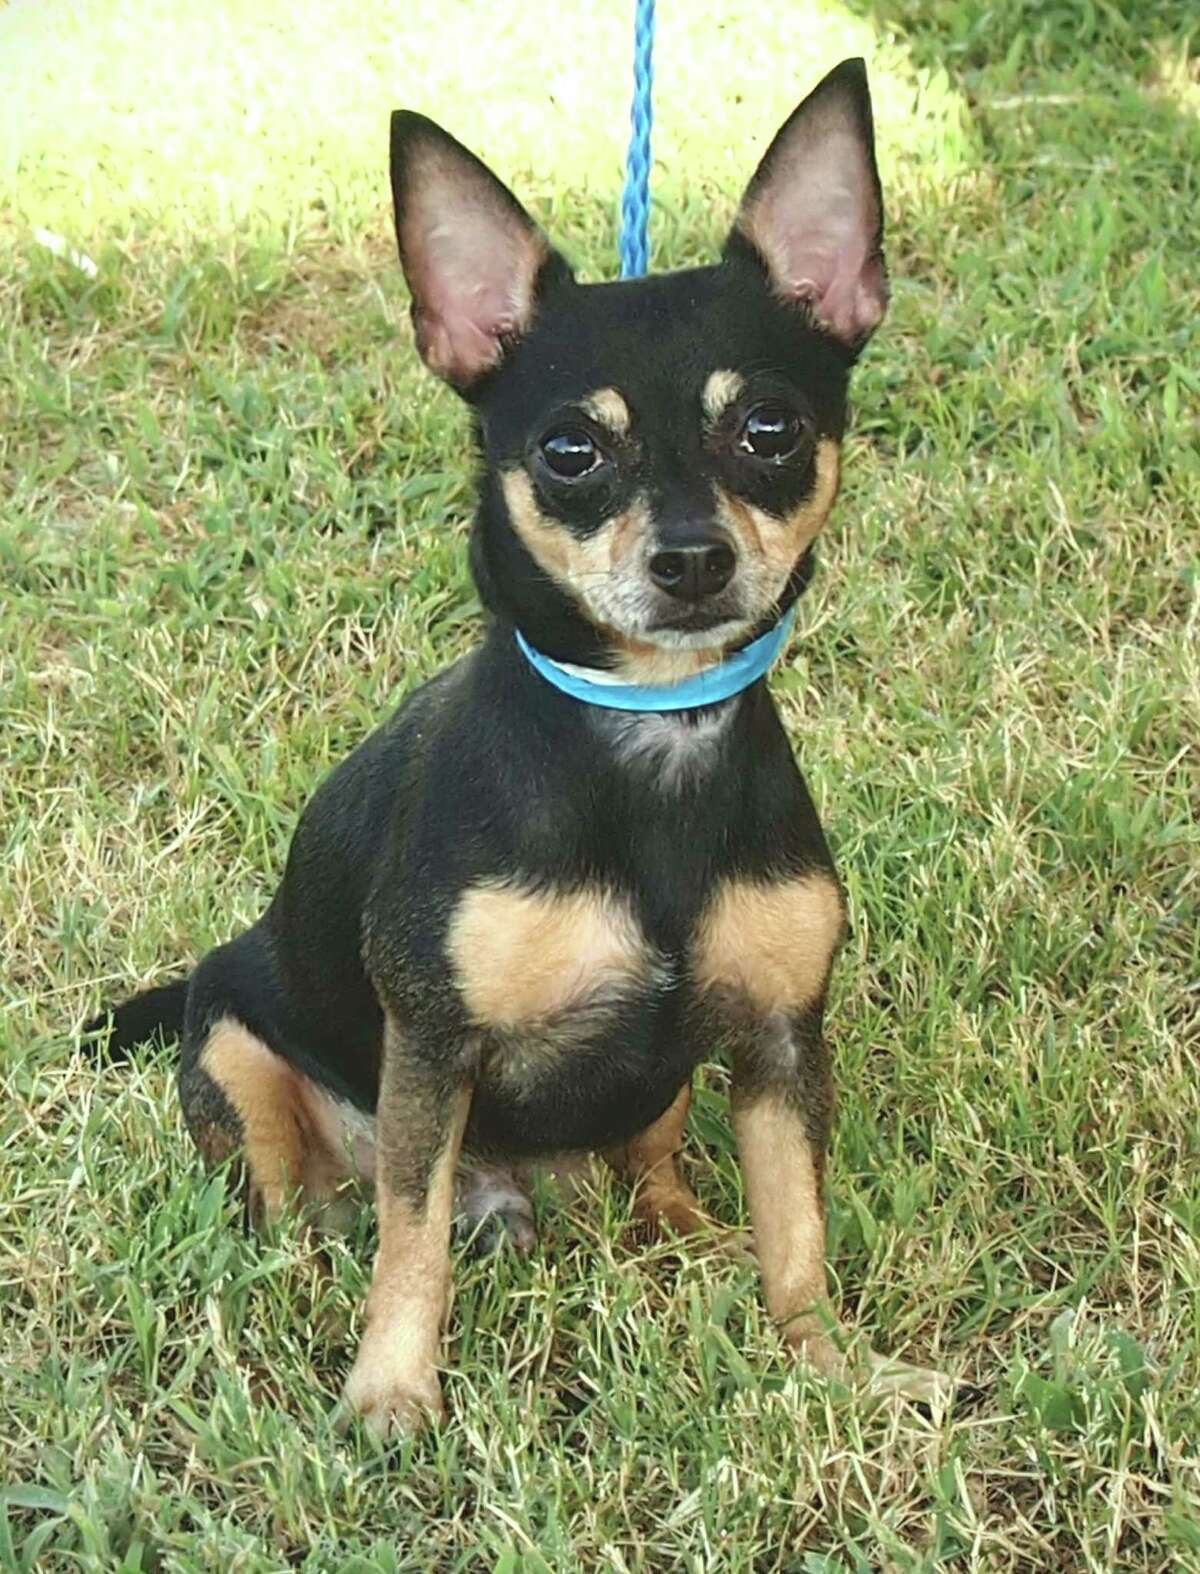 Bean will be available for adoption at 11 a.m. Friday at Citizens for Animal Protection, 17555 Interstate 10 W. More information: cap4pets.org or 281-497-0591.